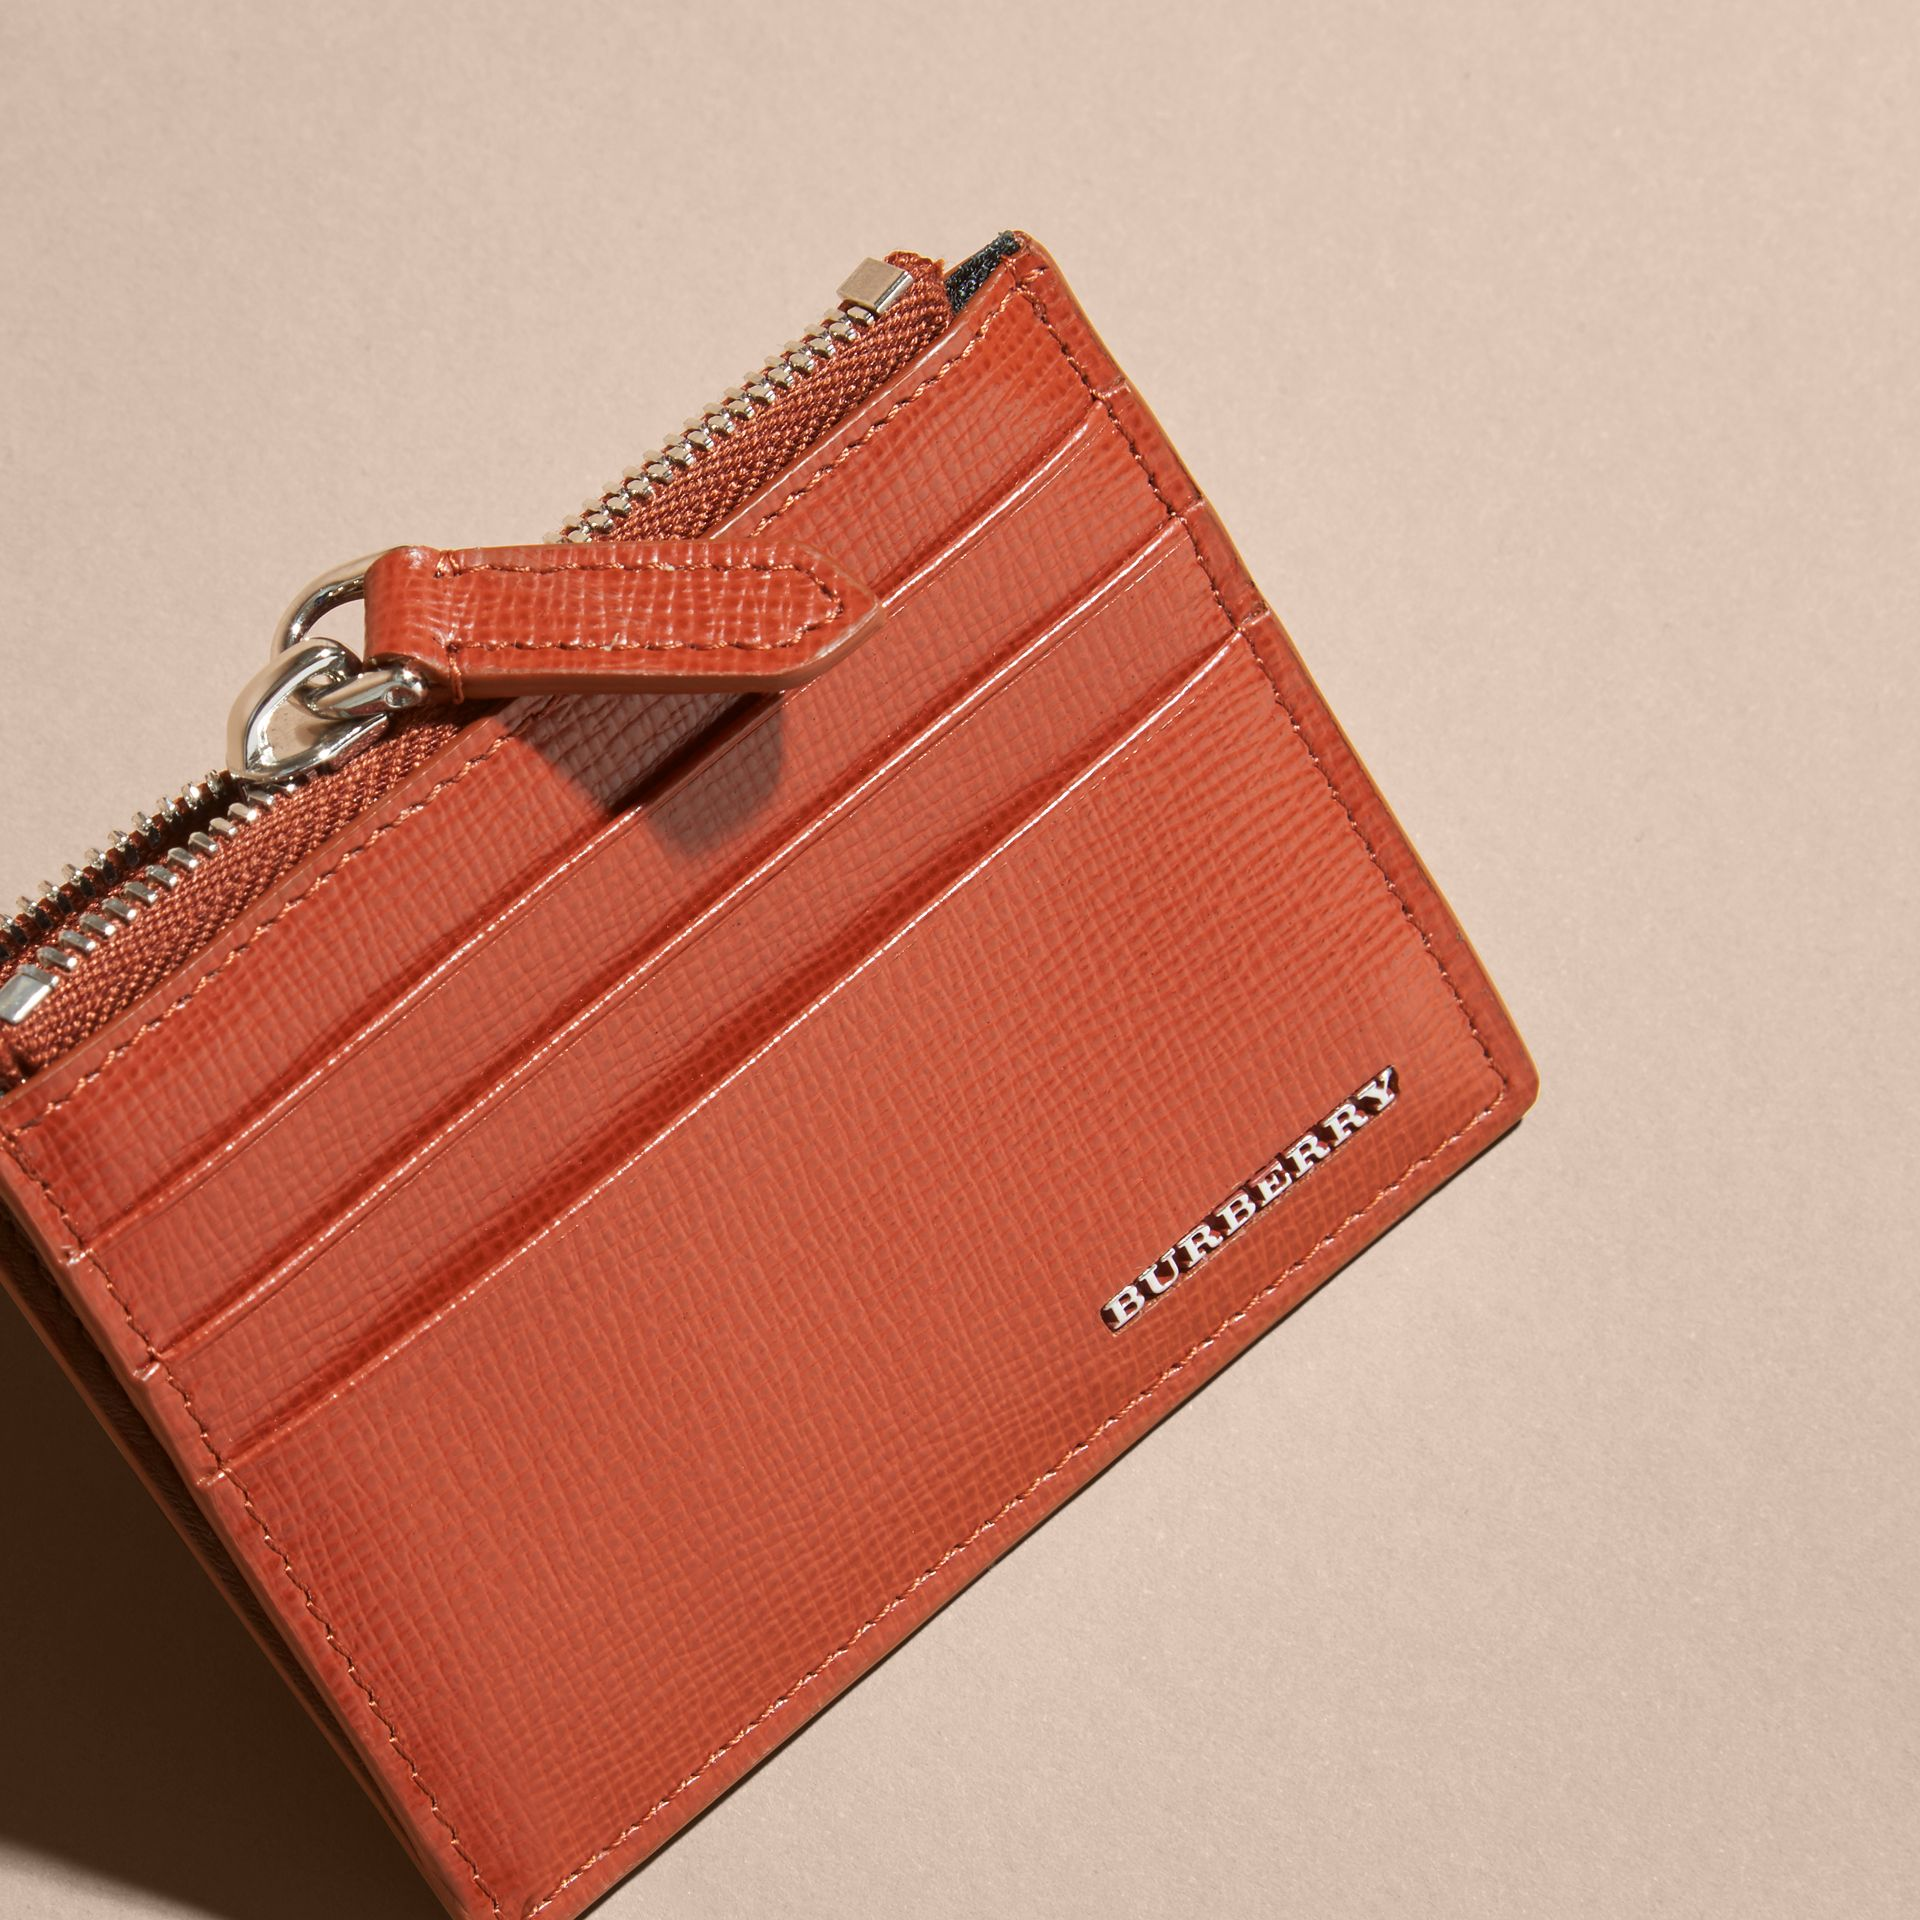 London Leather Zip-top Card Case in Burnt Sienna - gallery image 3